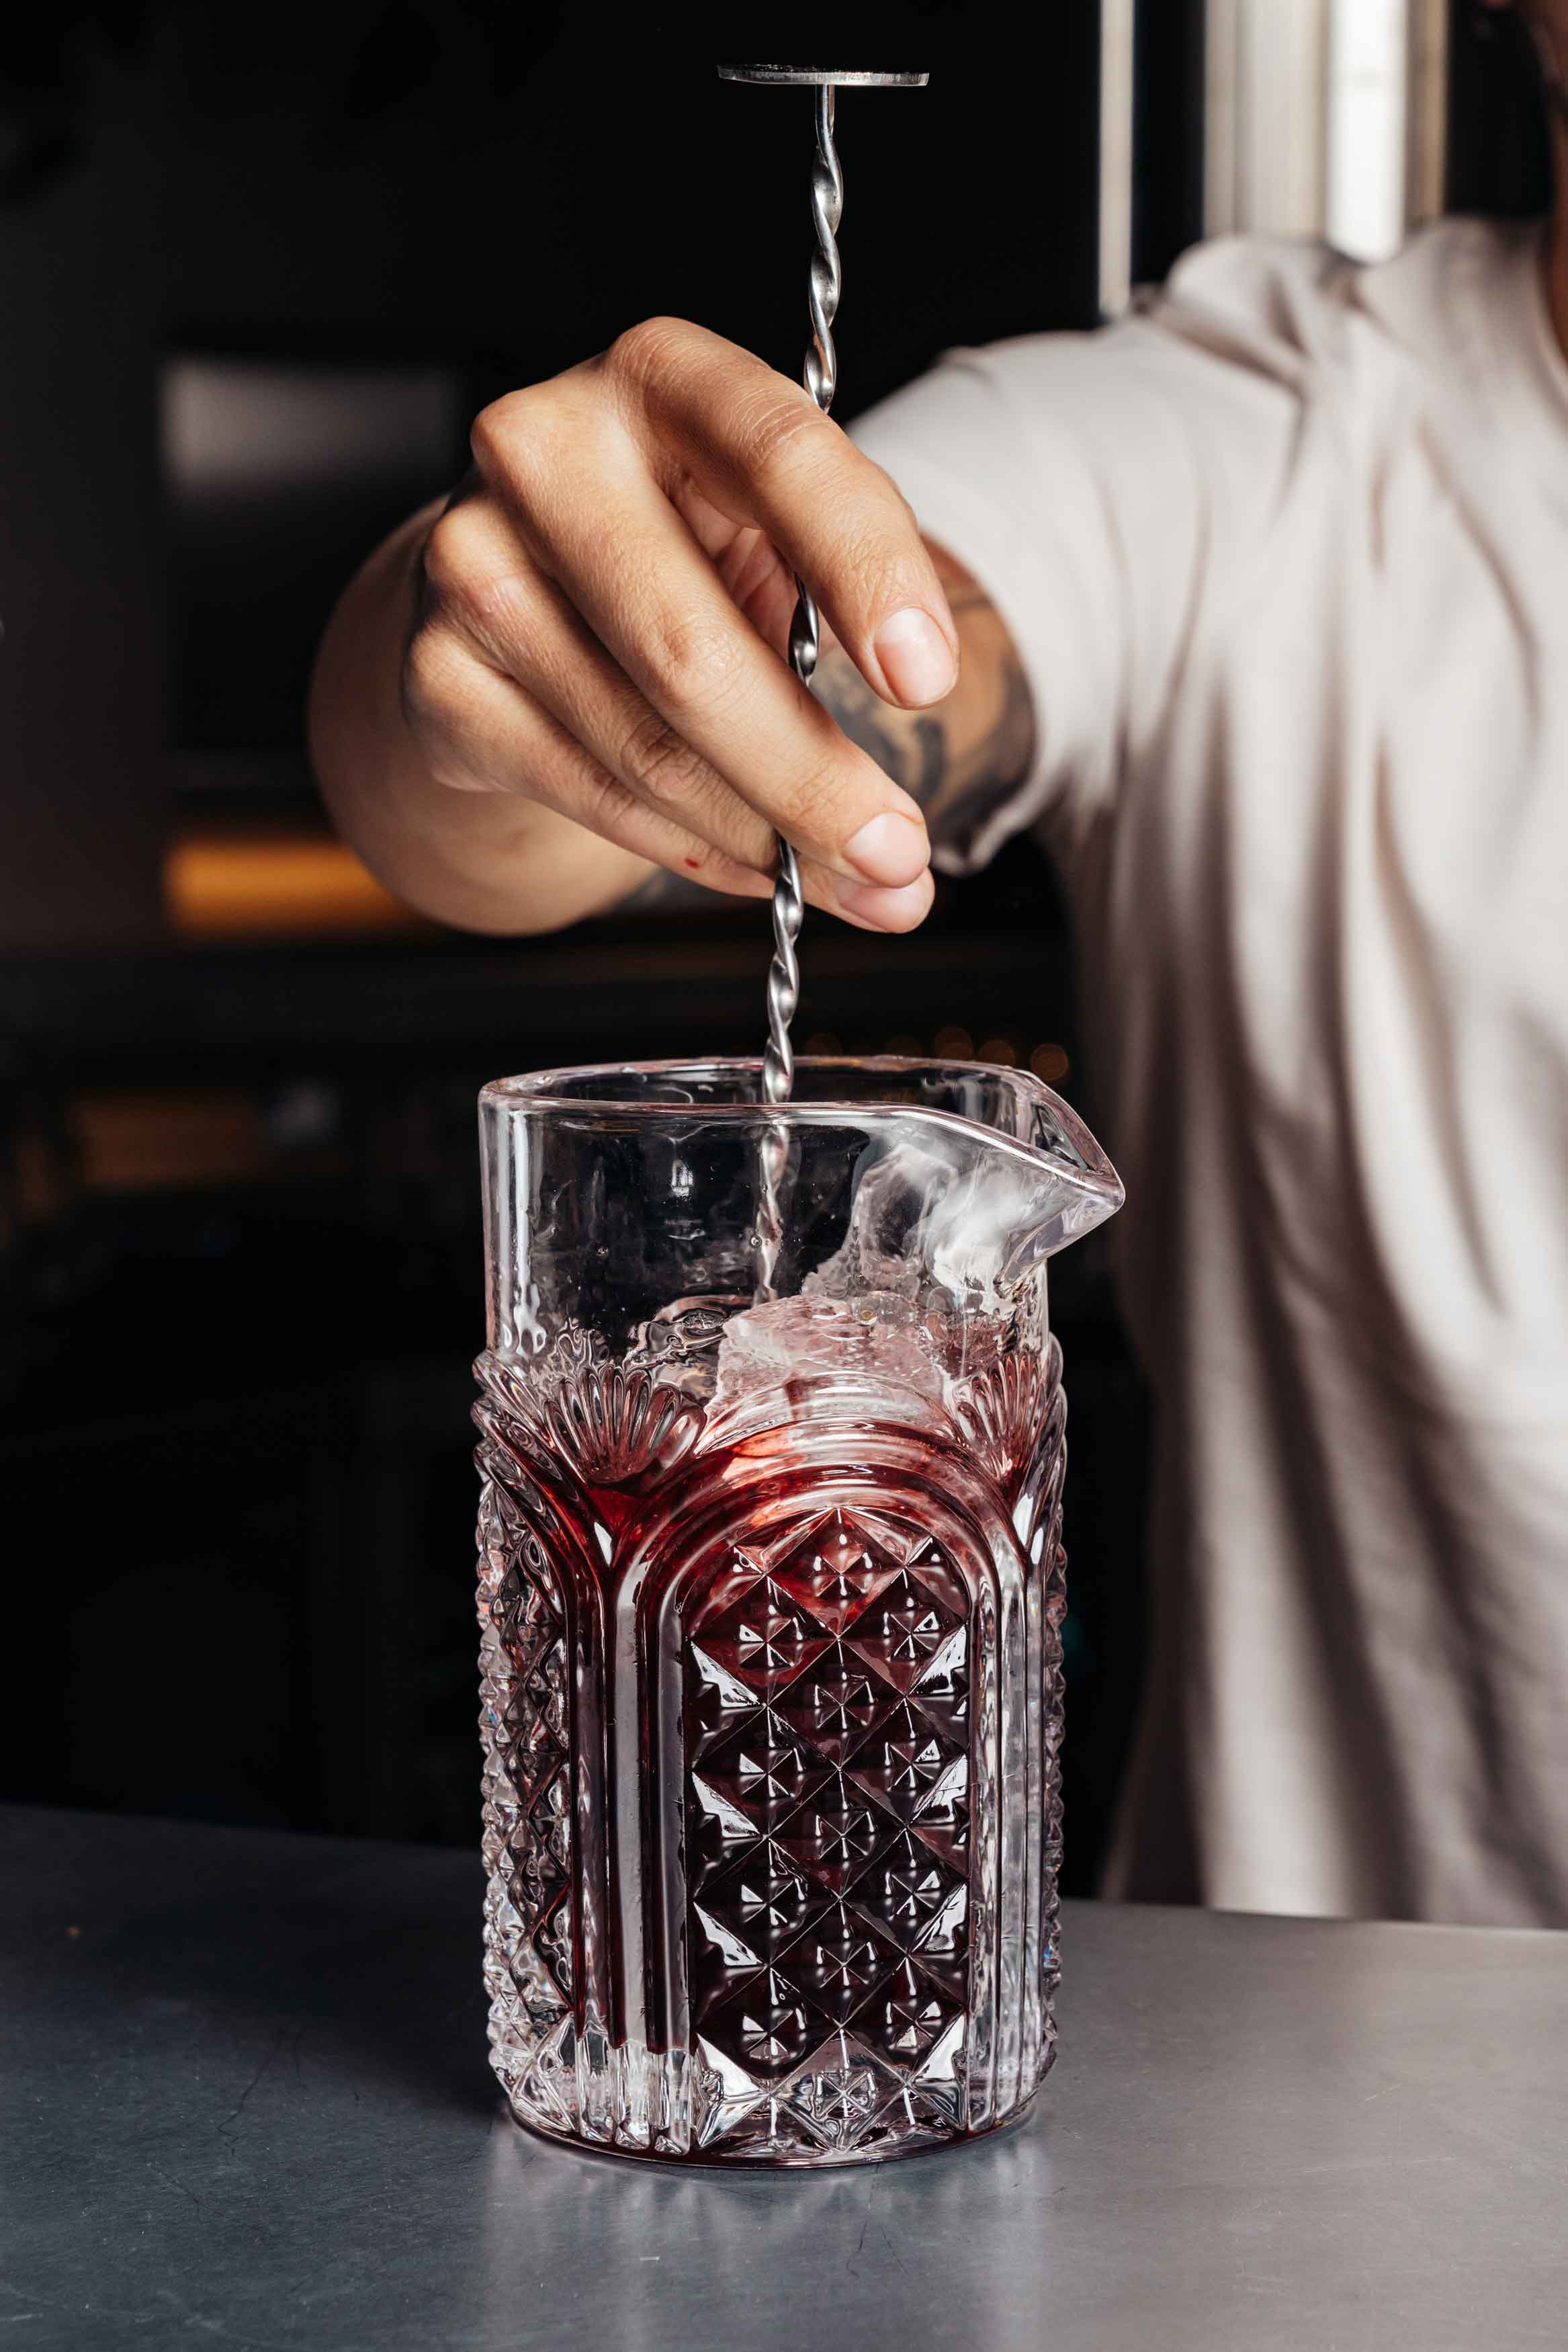 Red-Cocktail-kraft-dalston-kraftdalston-jim-and-tonic-distillery-brewery